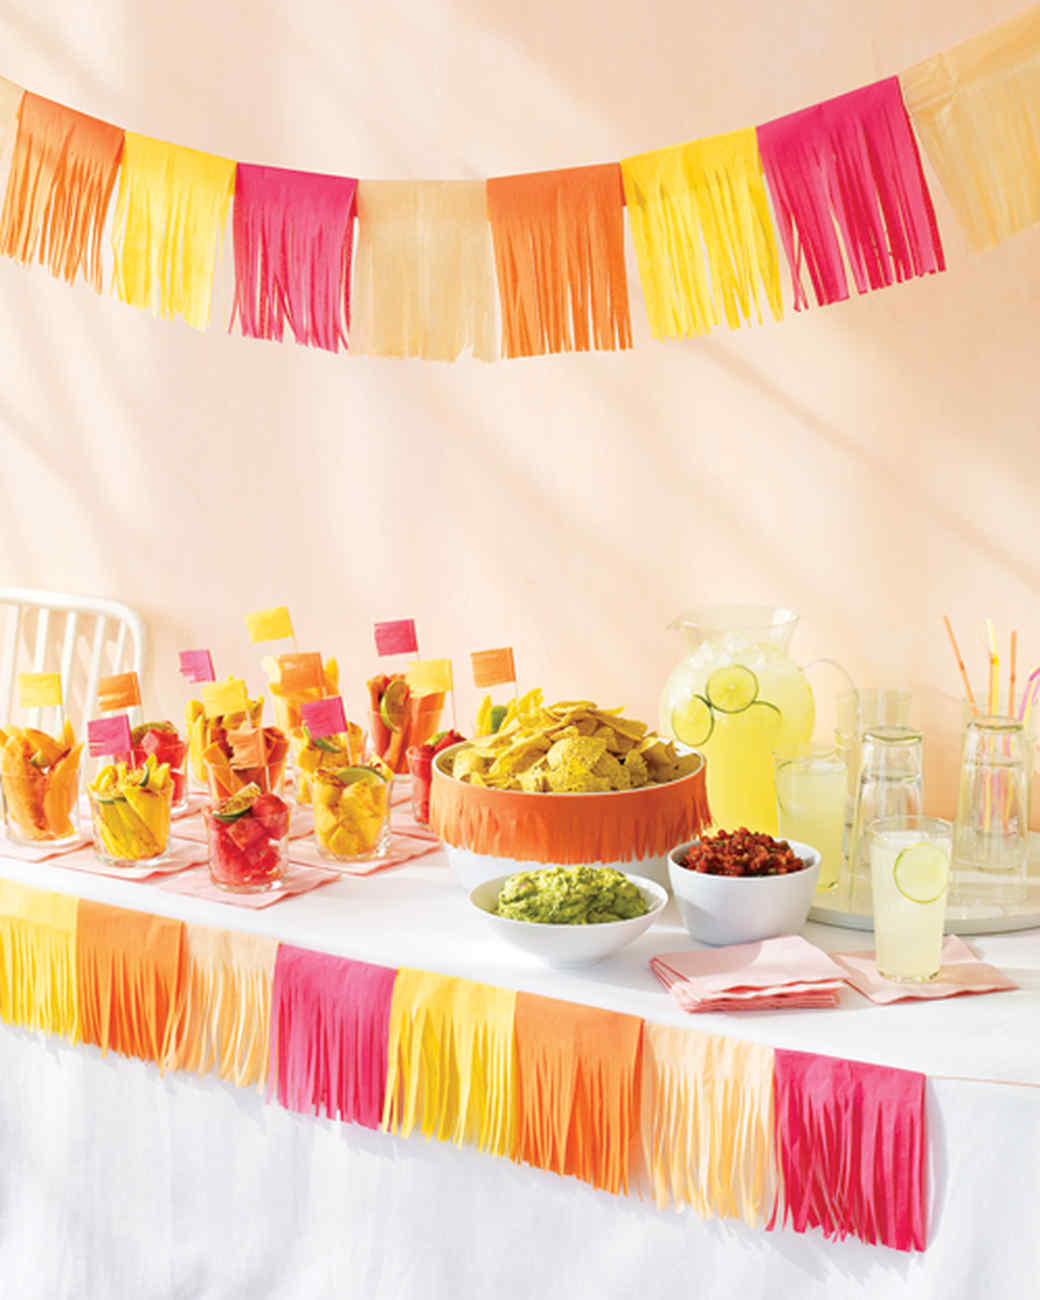 Cinco de mayo tissue paper decorations martha stewart for Paper decorations diy